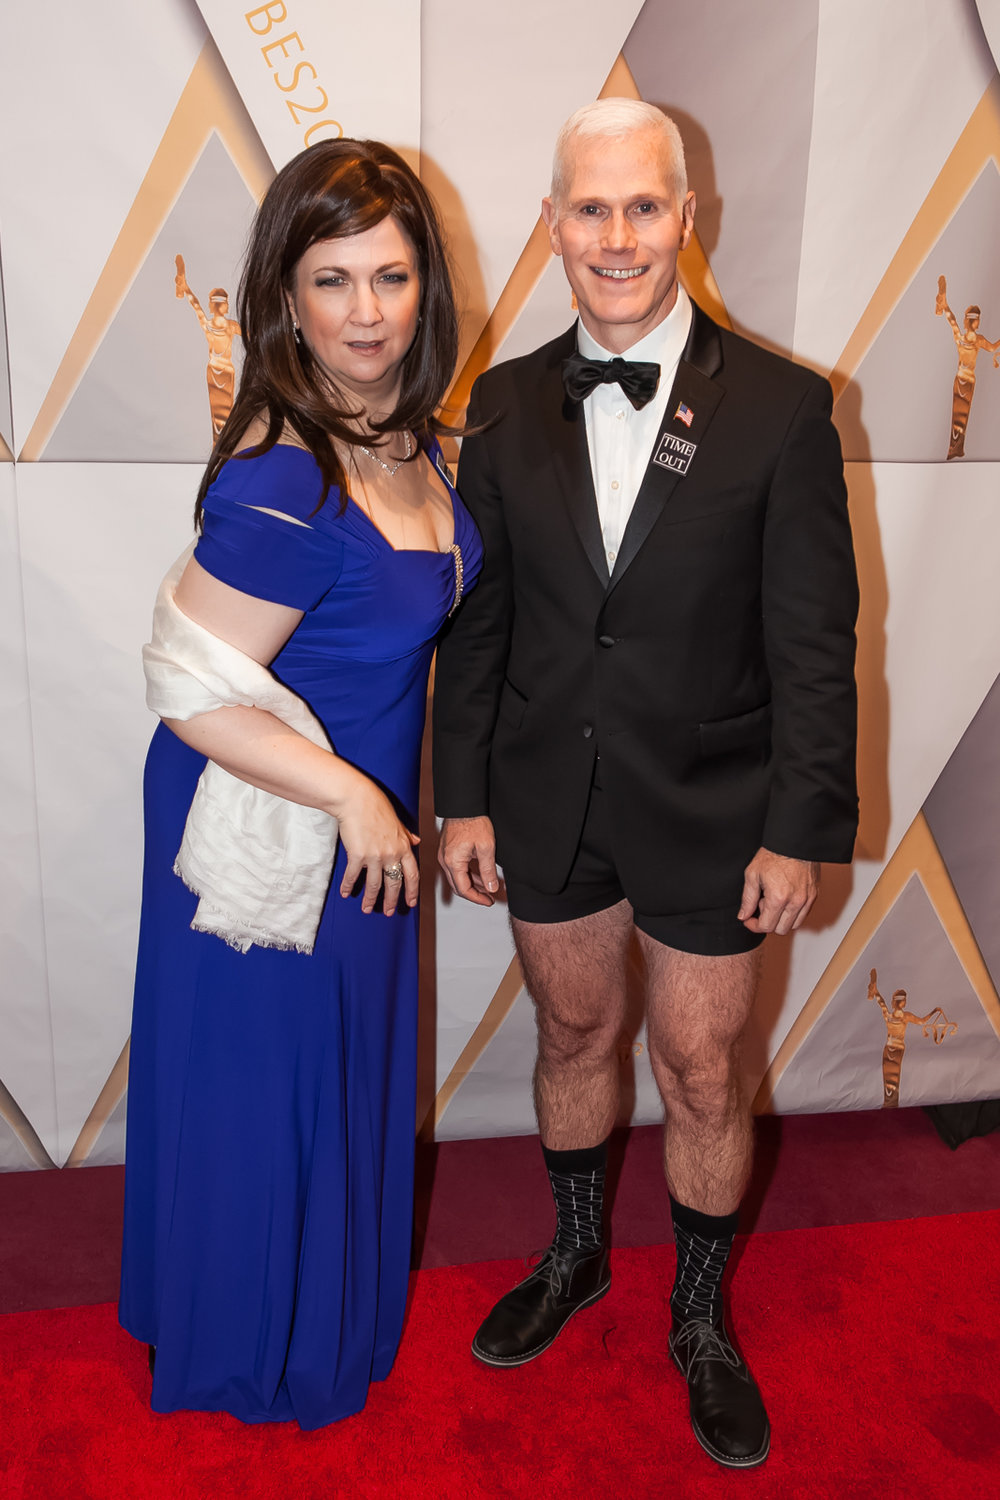 Sharon Spell as Sarah Suckabee Sanders, Mike Hot-Pence